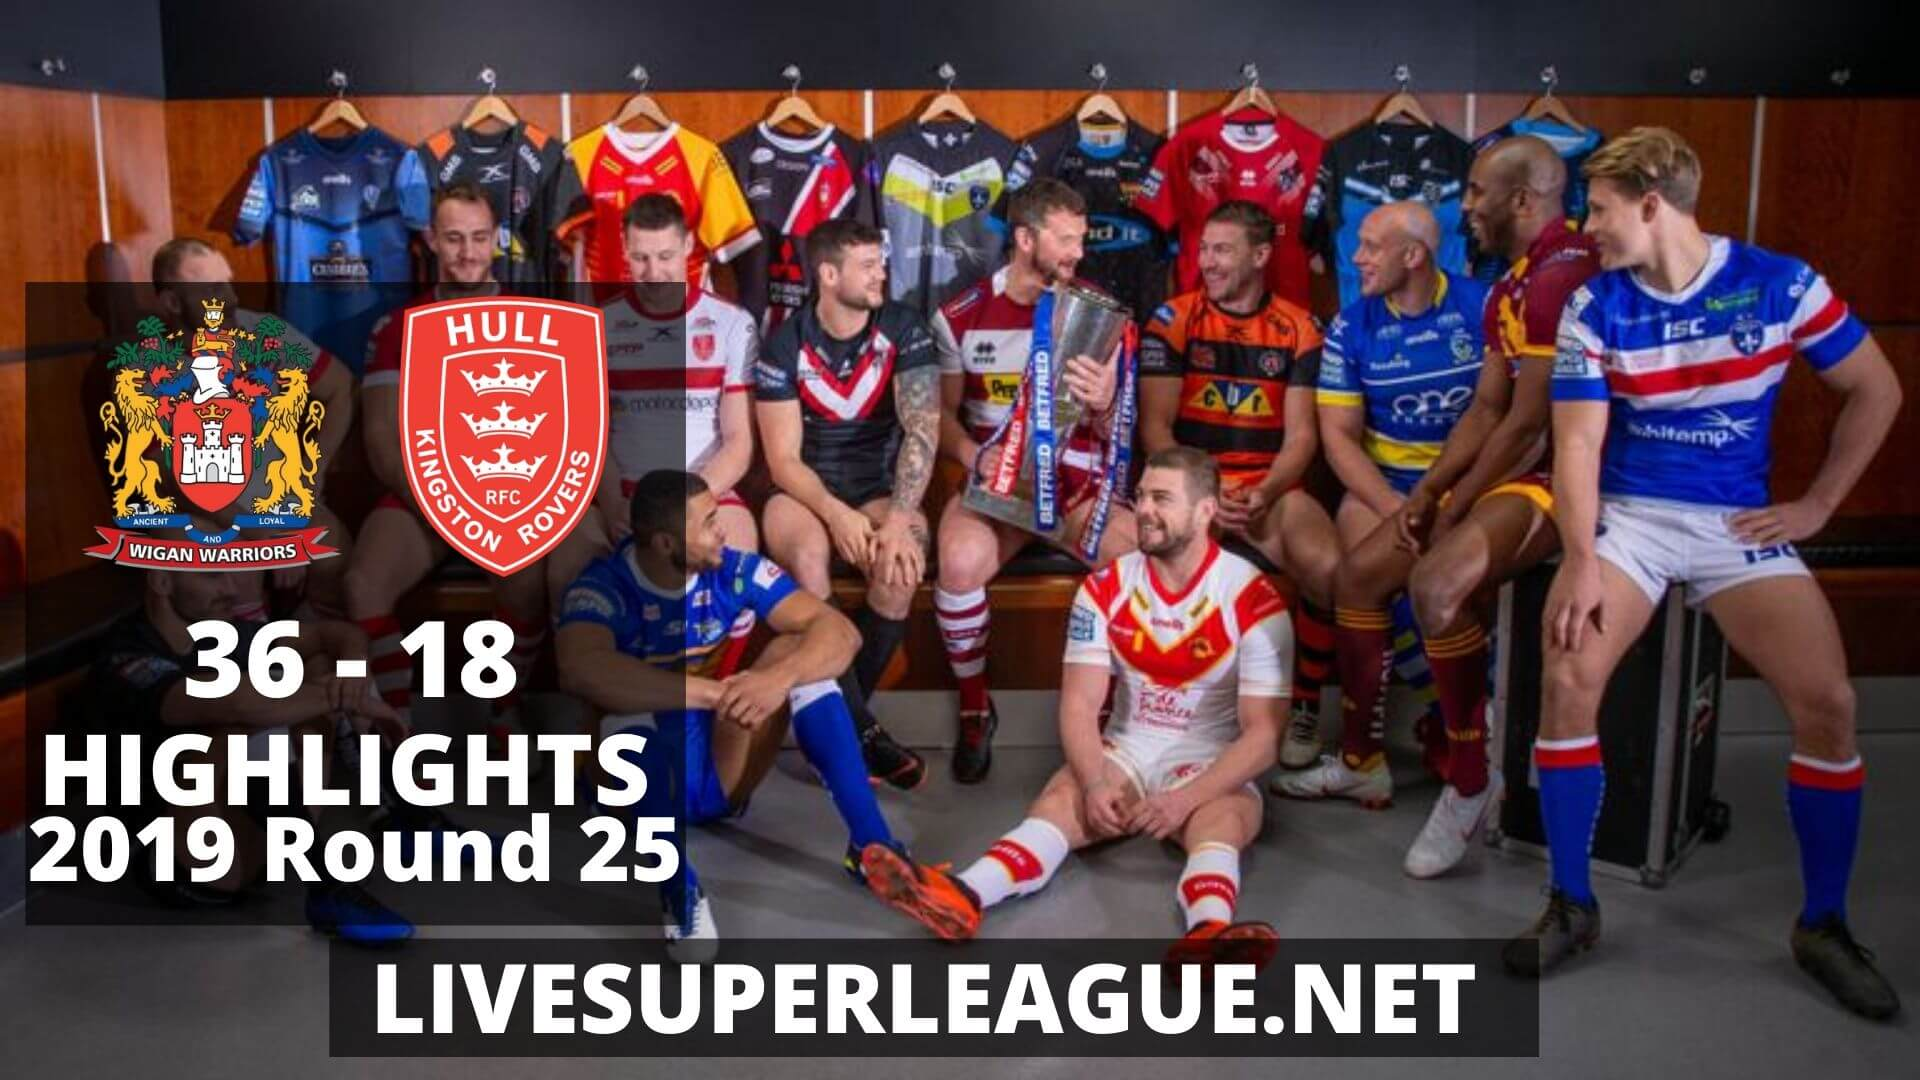 Wigan Warriors Vs Hull Kingston Rovers Highlights 2019 Round 25